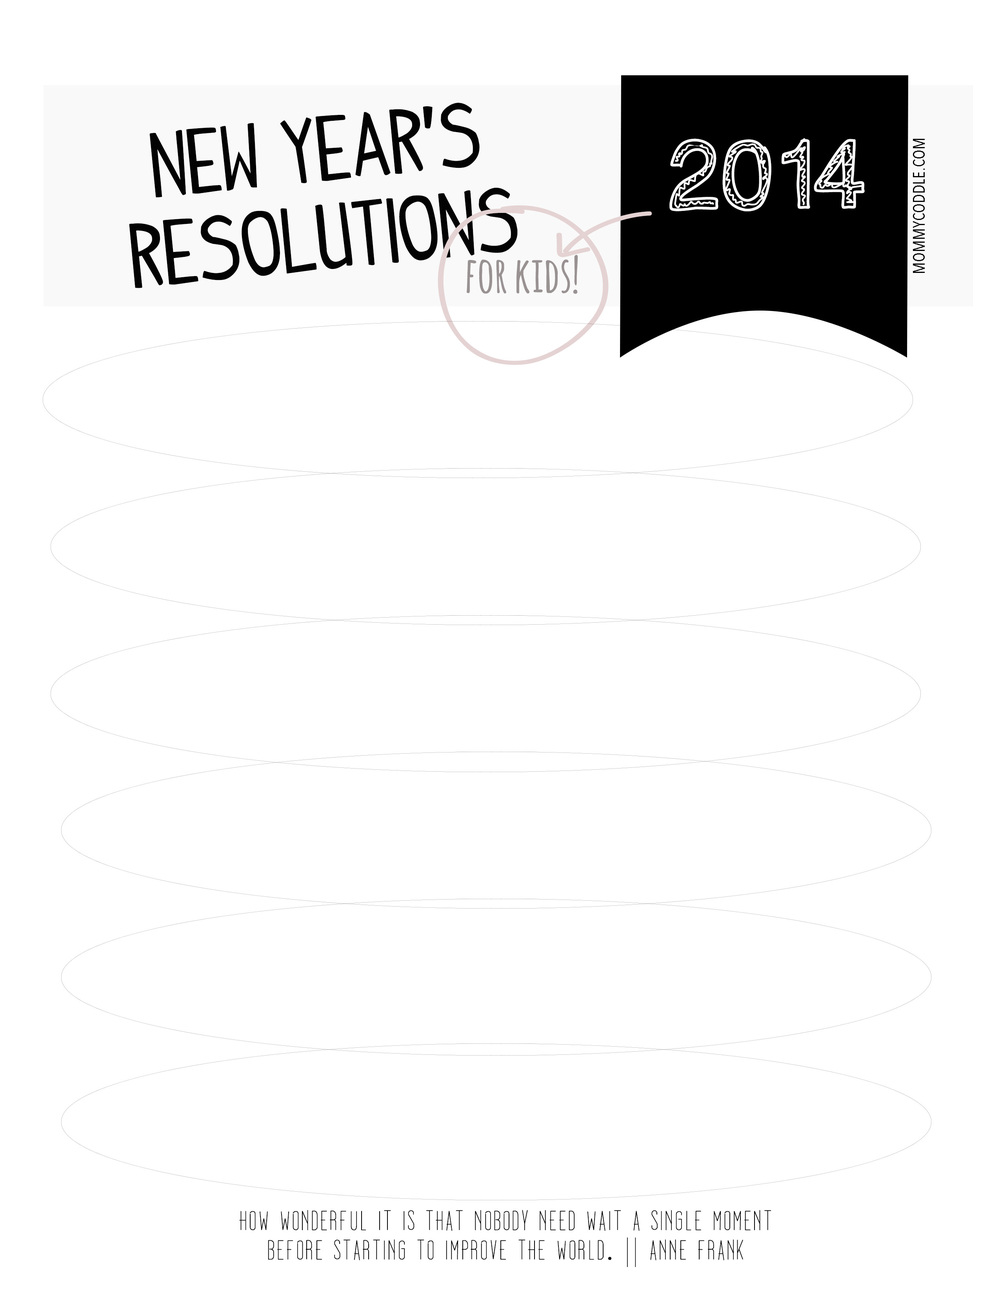 graphic regarding New Year's Worksheets Printable identified as A printable Fresh Decades Resolutions sheet for children - MommyCoddle